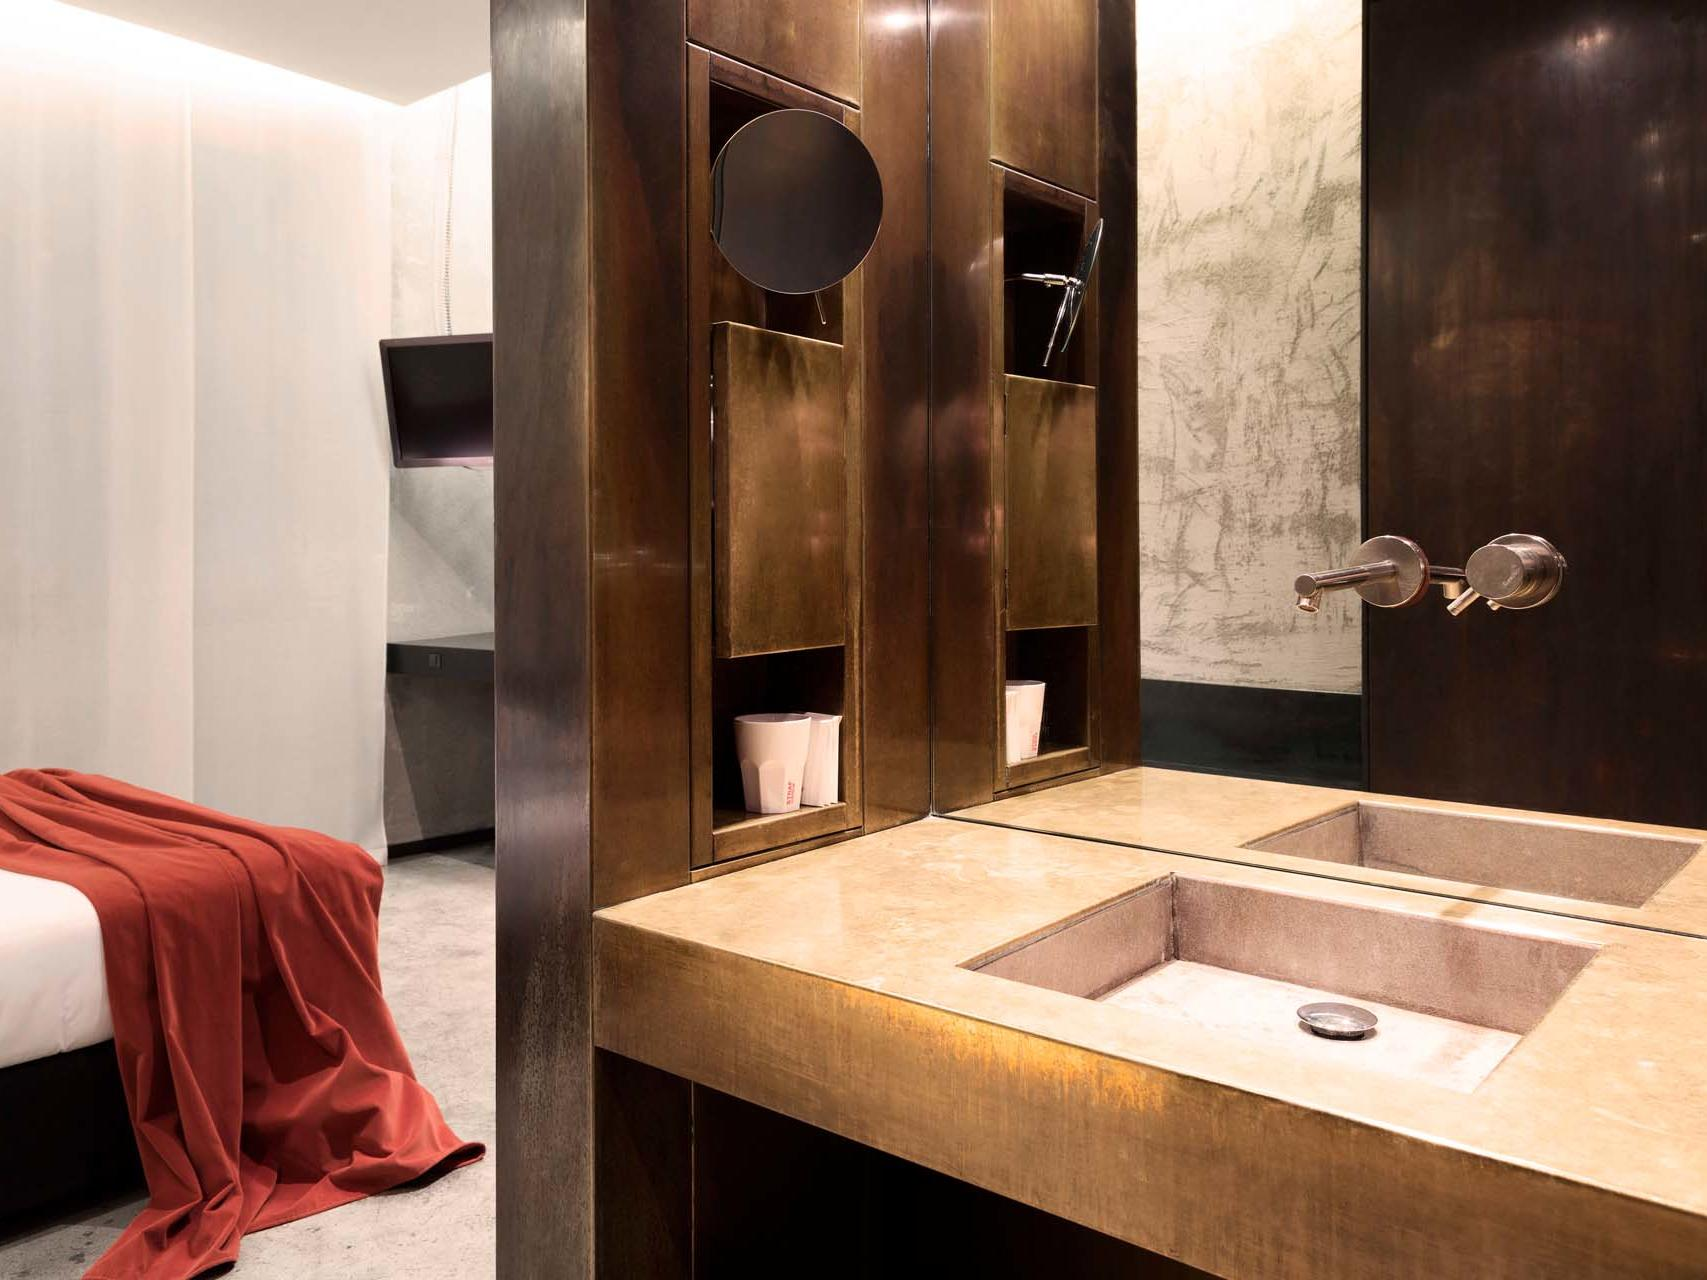 Single Room at STRAFhotel&bar in Milan centre